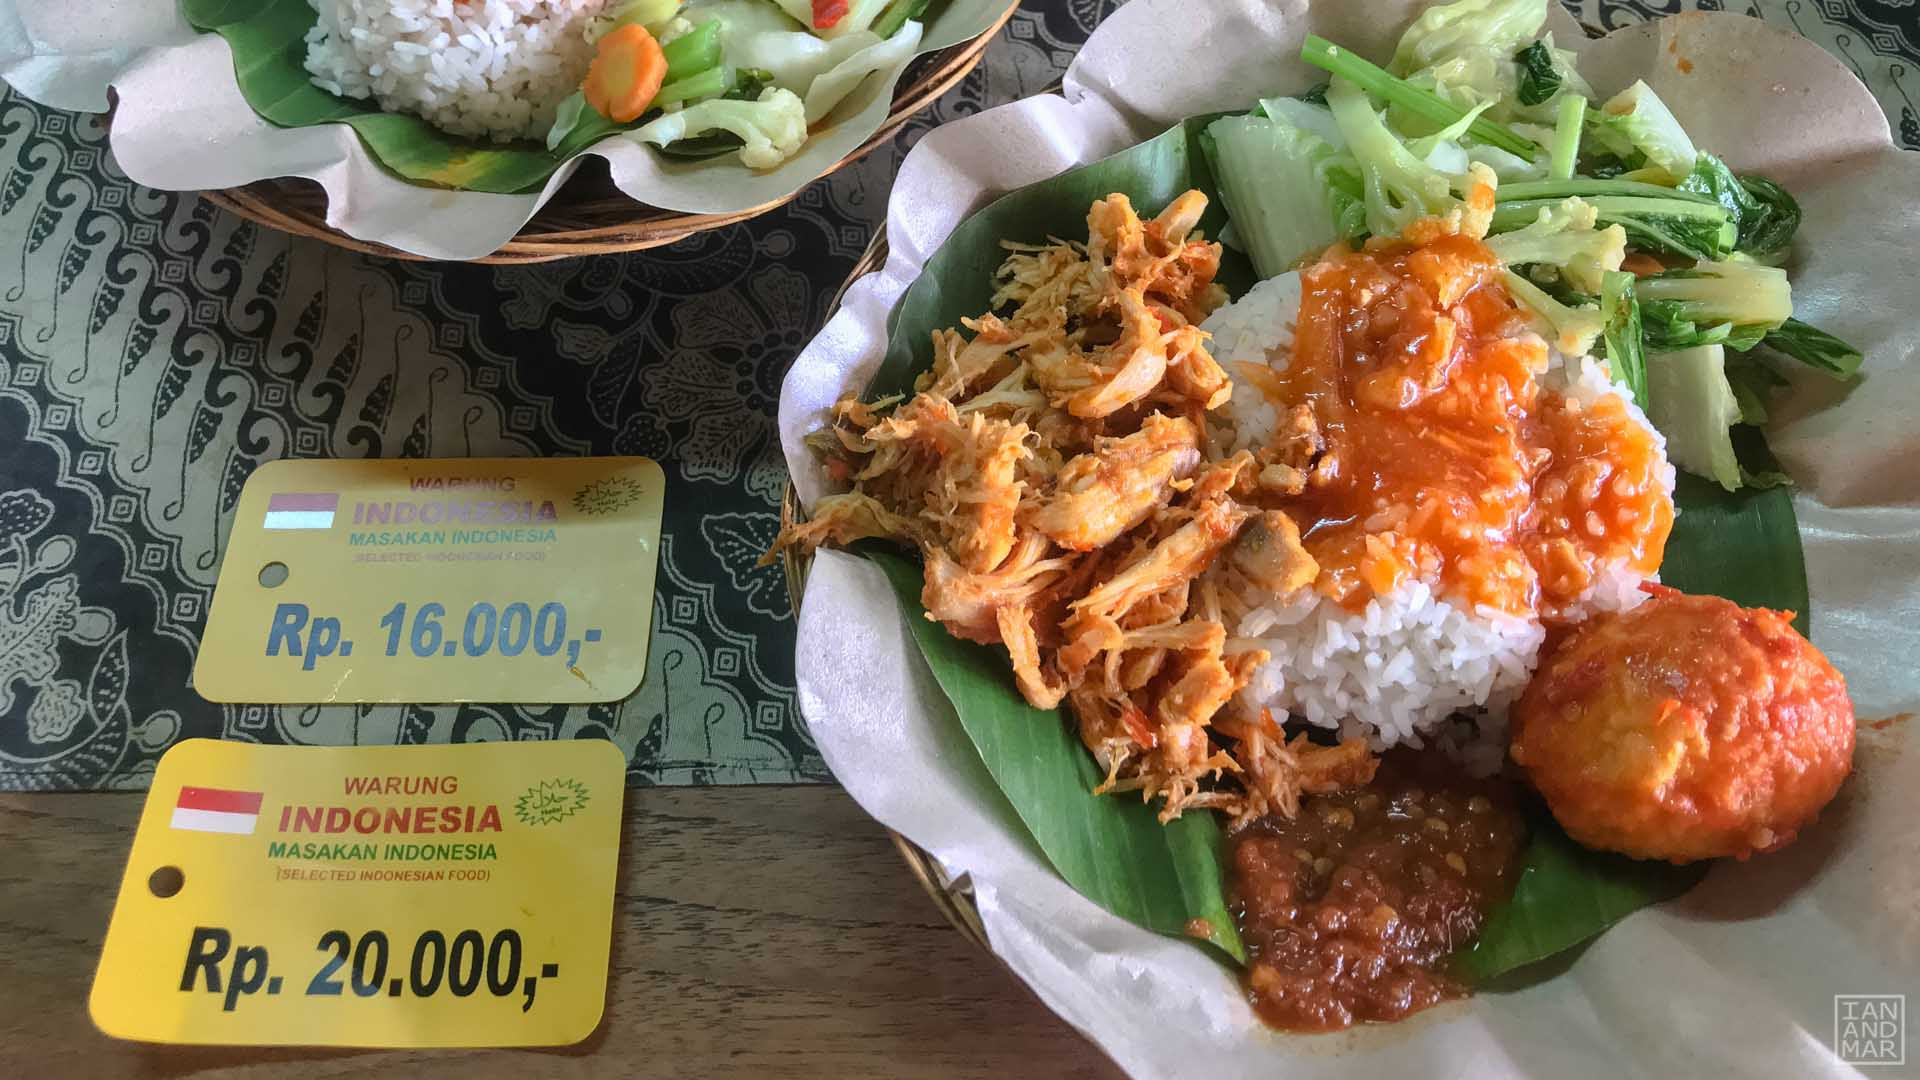 balinese food with rice